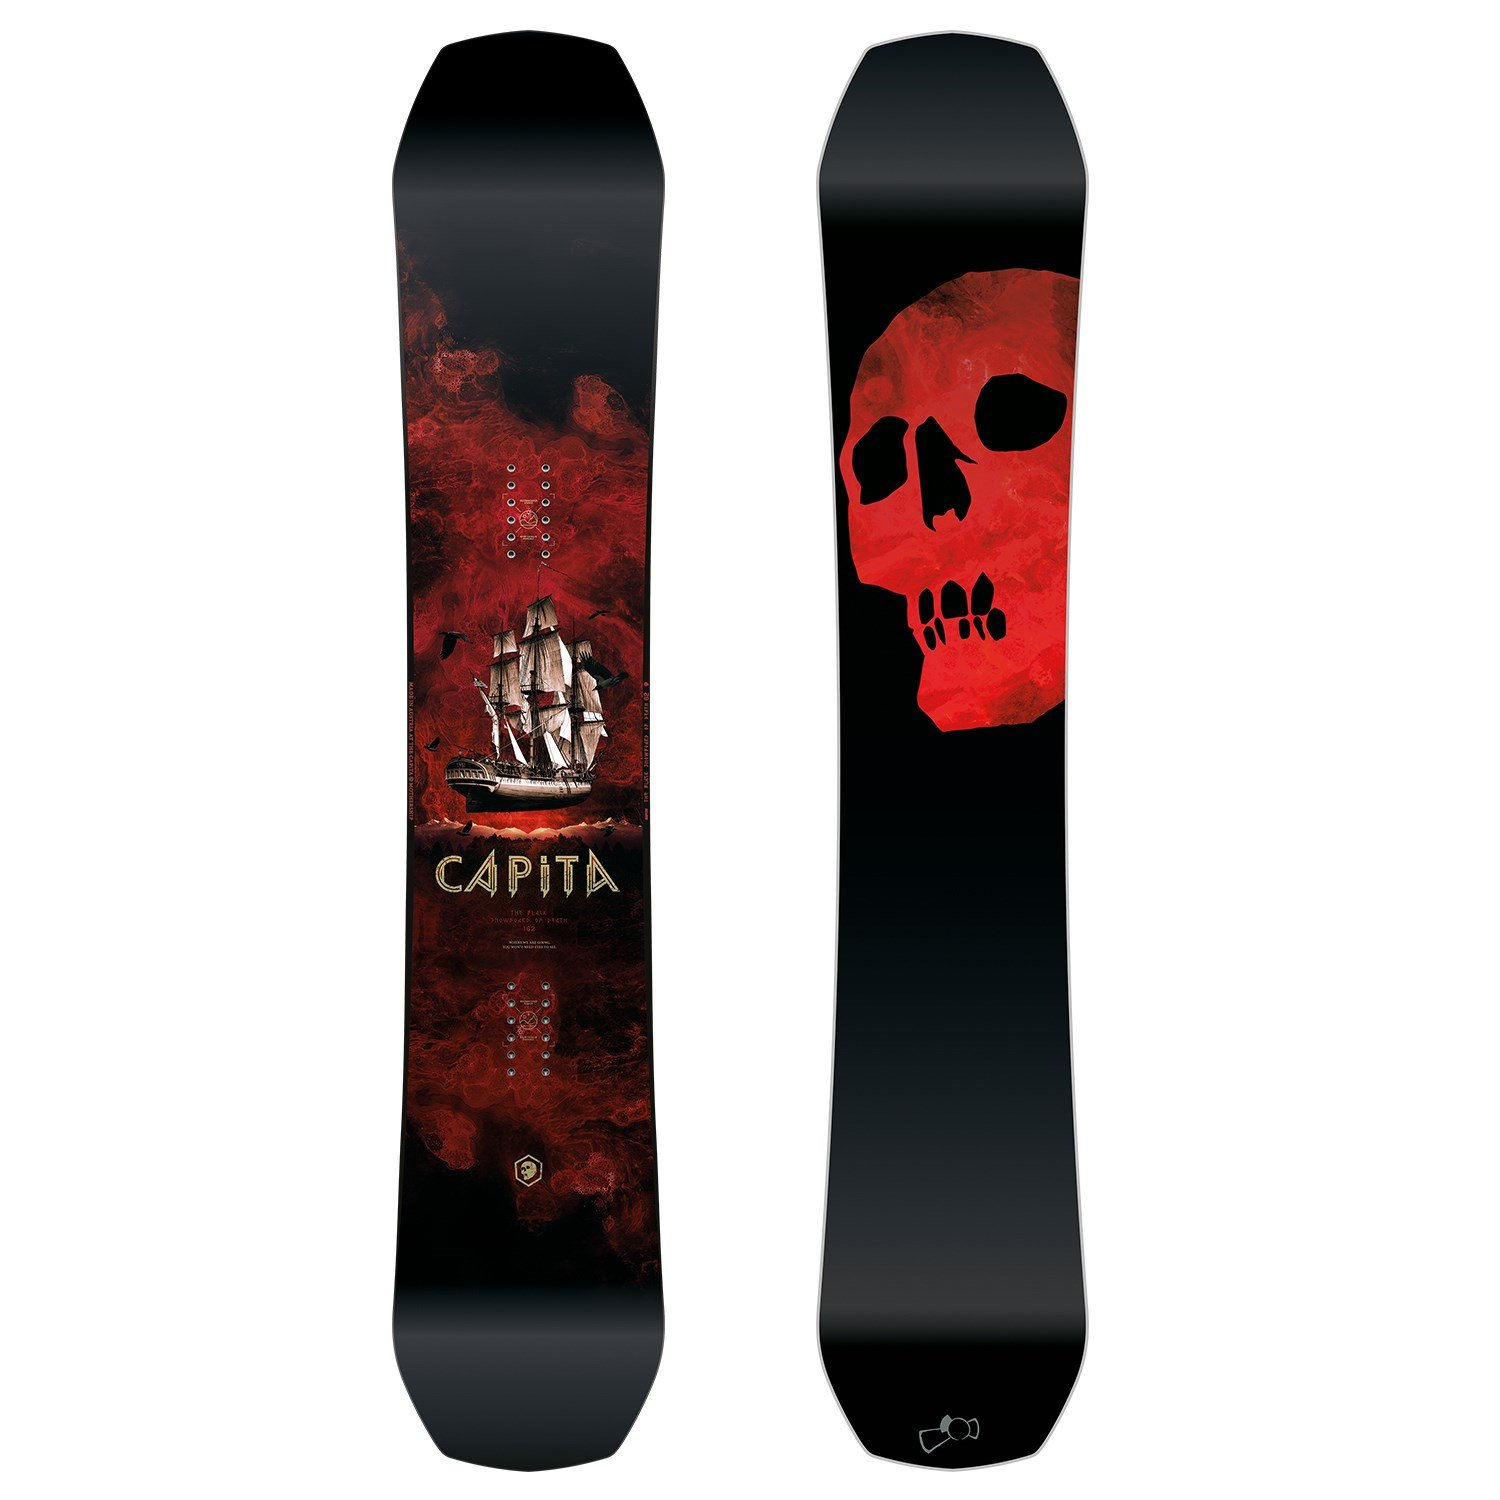 CAPITA- The Black Snowboard of Death